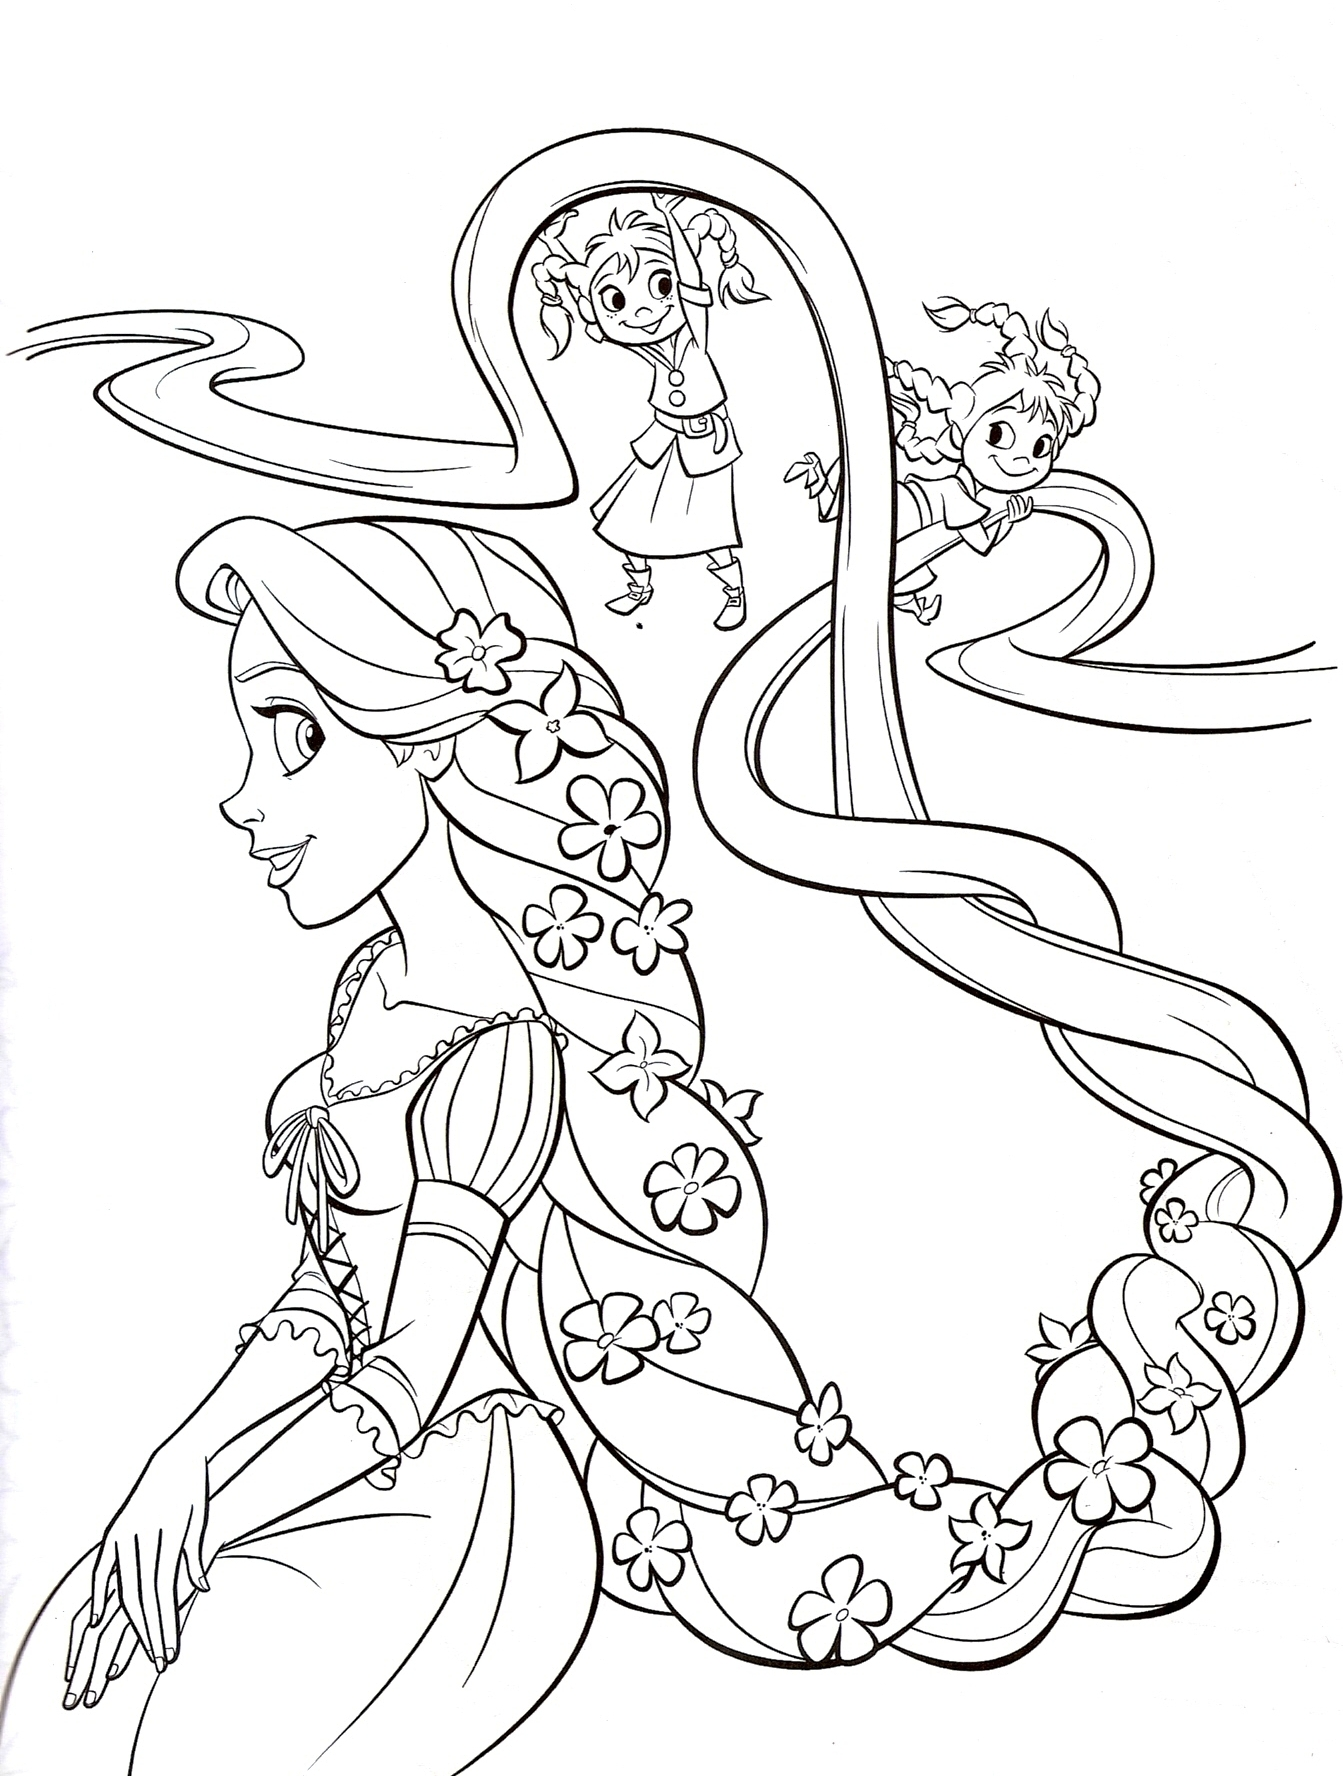 Tangled Rapunzel Printable Coloring Page